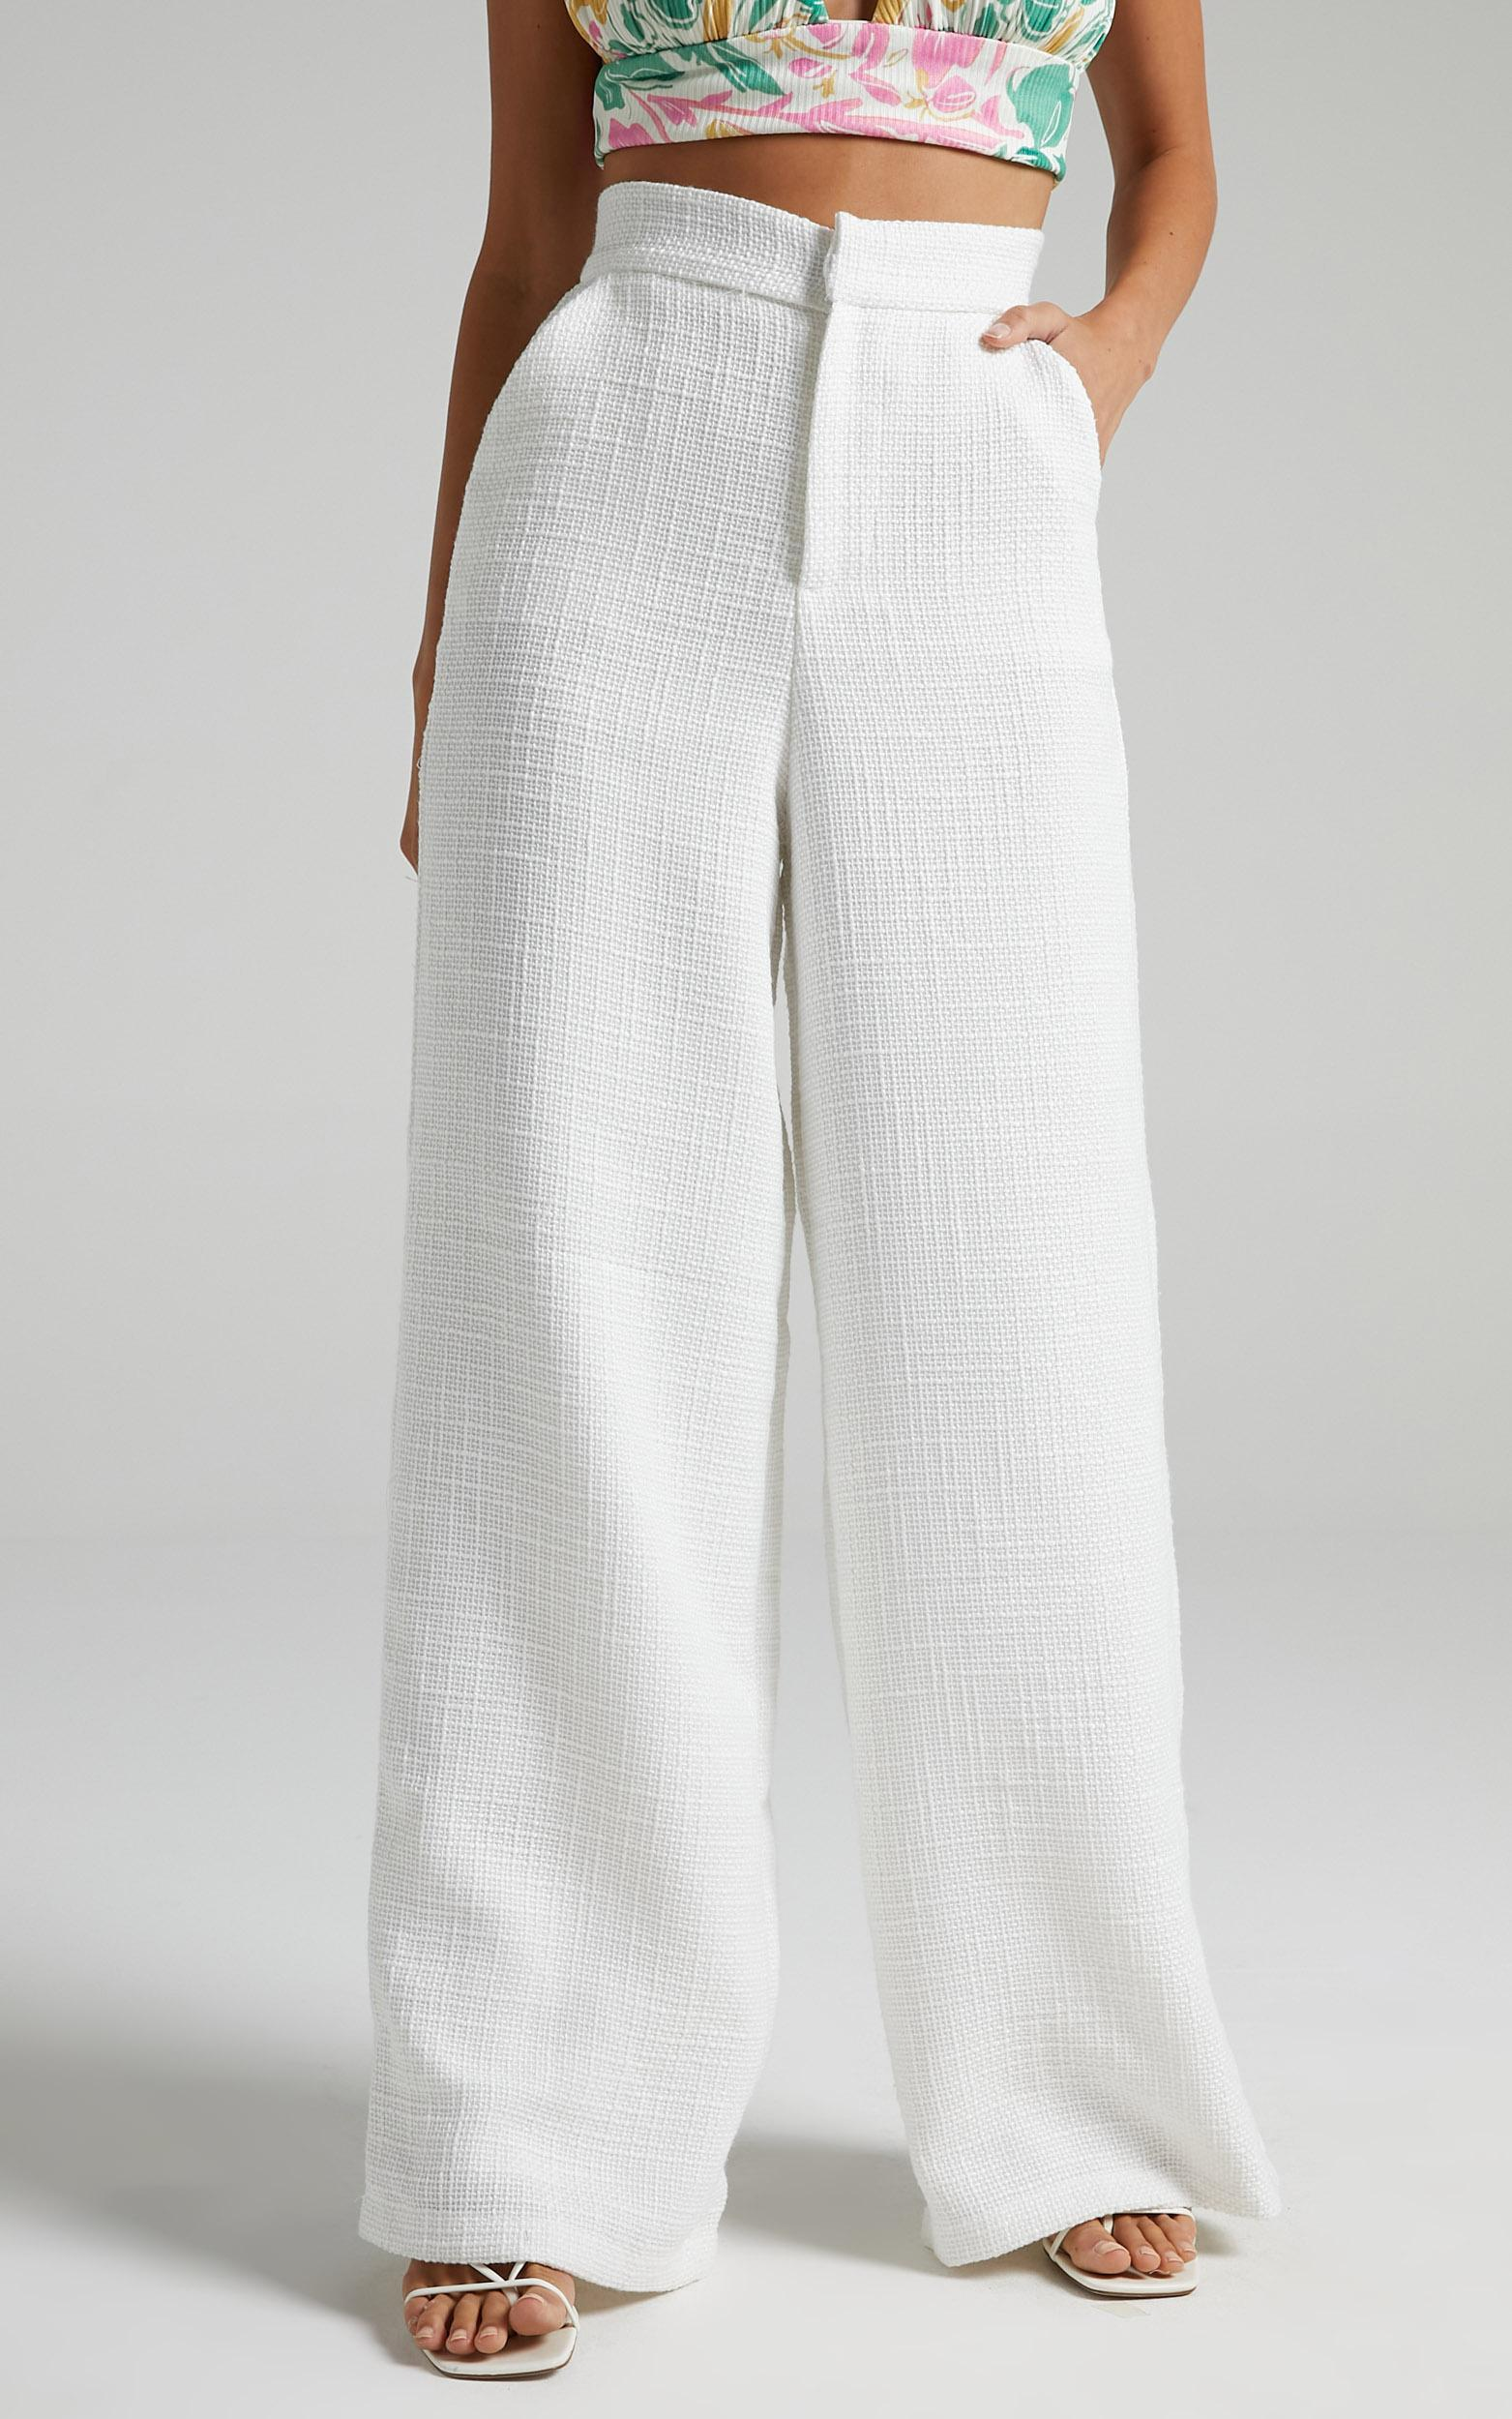 Walters Pants in White - 06, WHT2, hi-res image number null